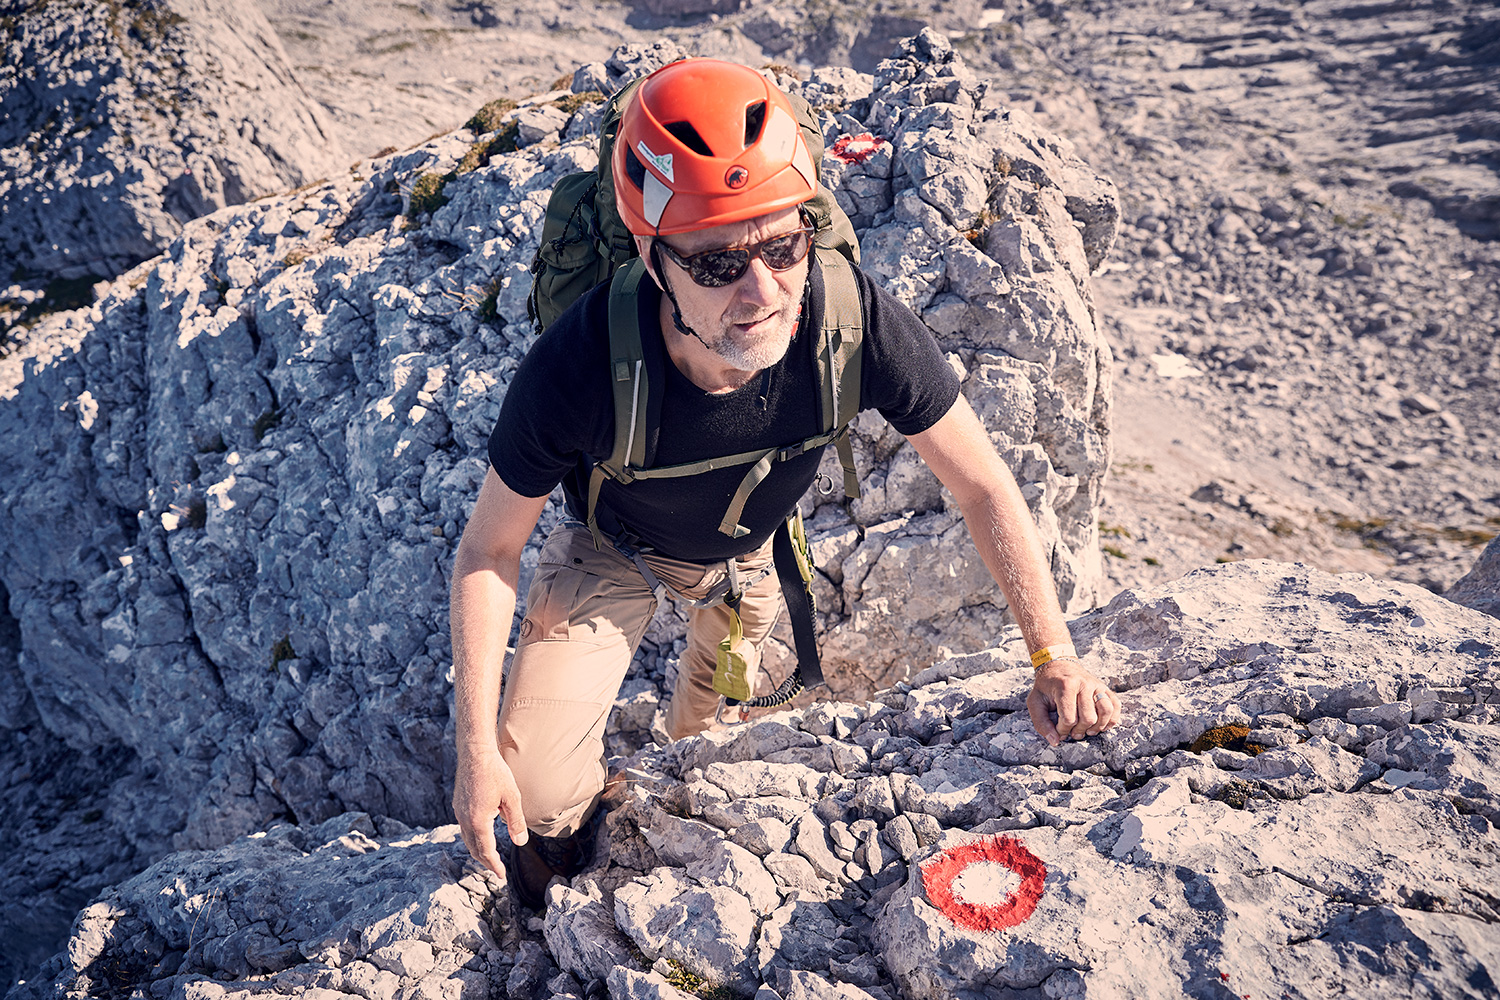 WALDEN Magazin founder Harald Willenbrock climbing a rockface on his first mountaineering tour in Austria